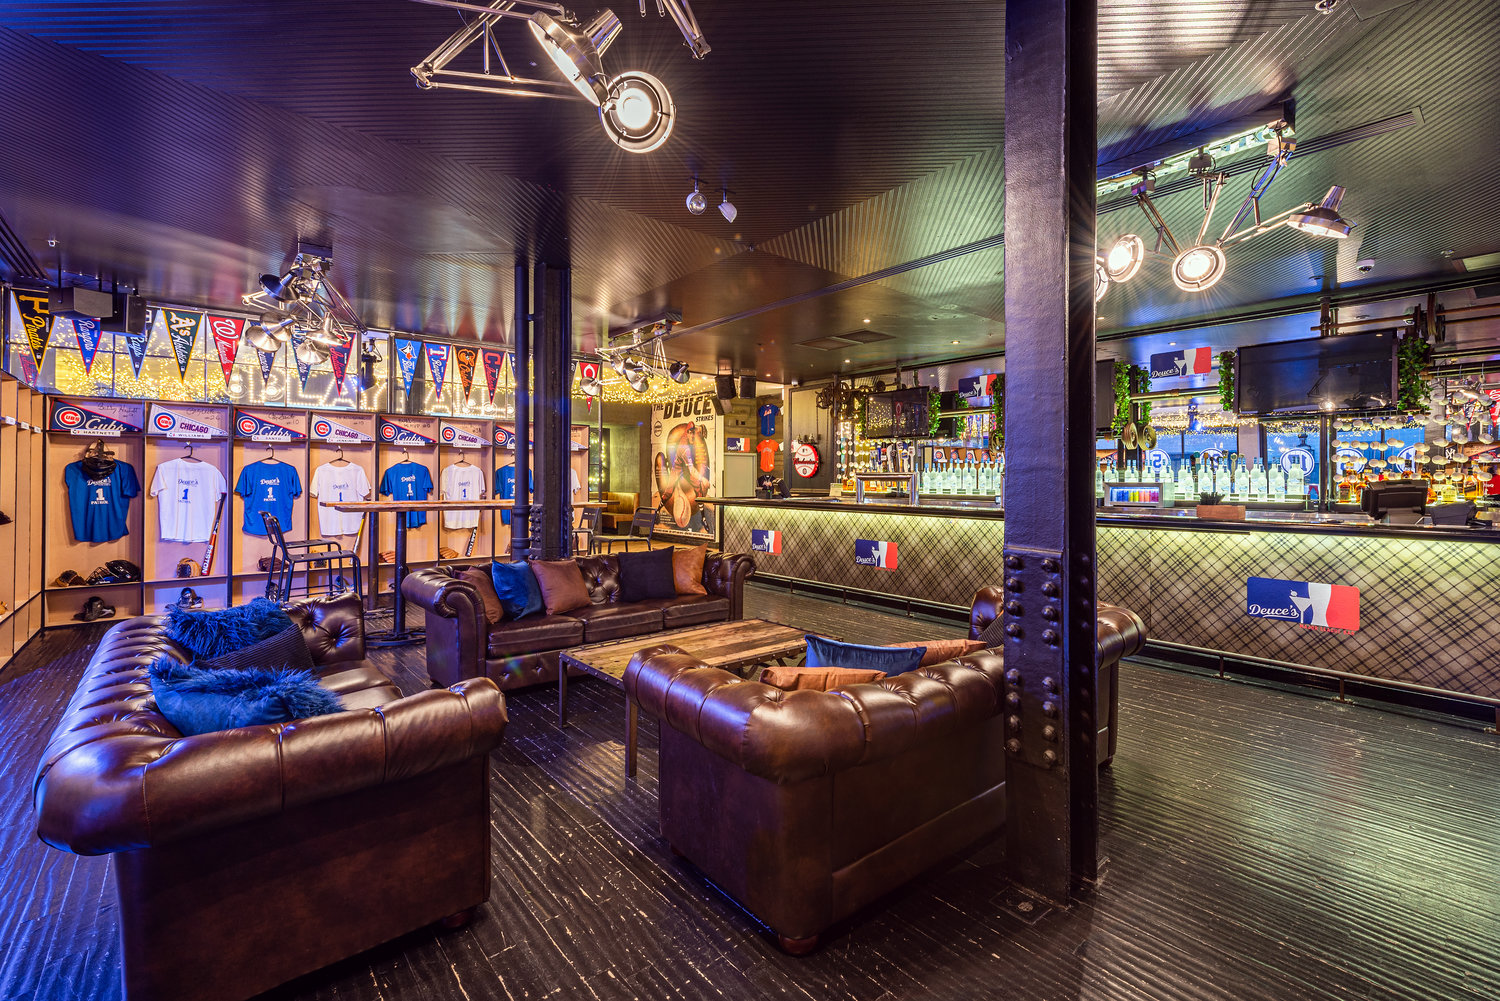 Deuce's Major League Bar event space in Chicago, Chicagoland Area